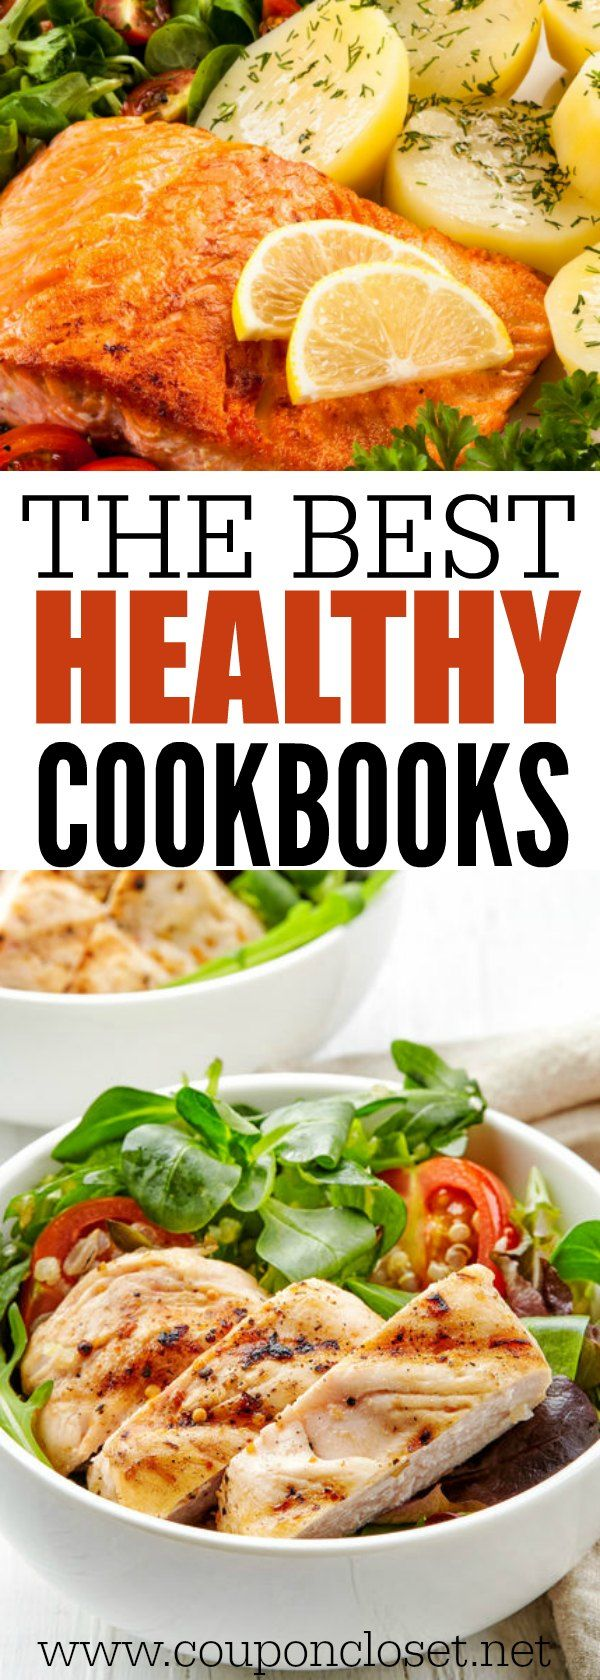 Here are 25 of the best Healthy cookbooks that will inspire you to be healthy. Find great tasting healthy recipes in these healthy cookbooks.